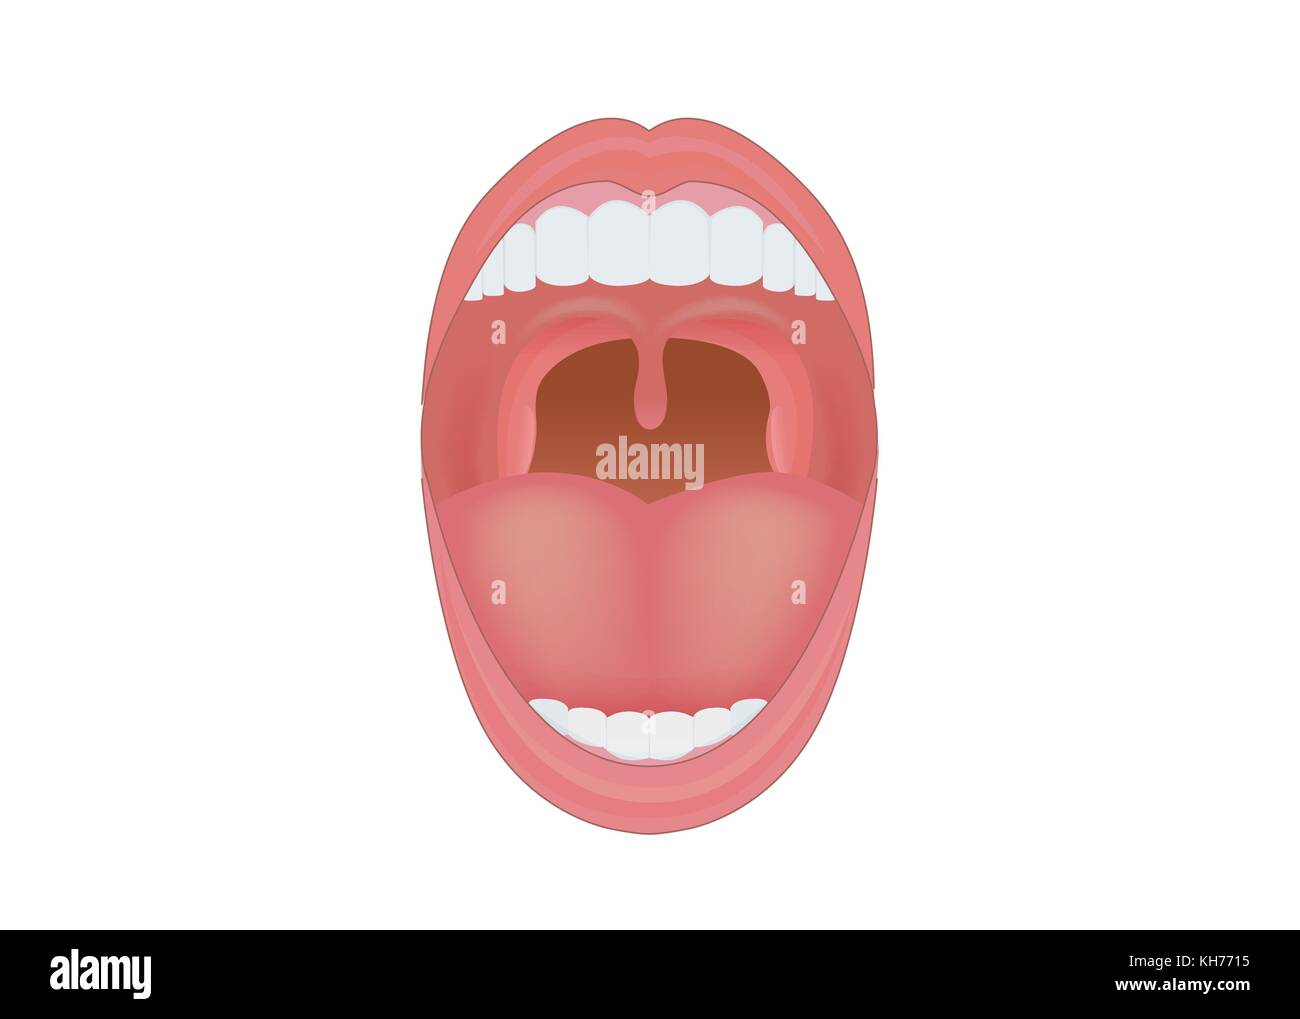 Diagram tongue stock photos diagram tongue stock images alamy human mouth opened to show teeth gum and tongue inside stock image ccuart Choice Image